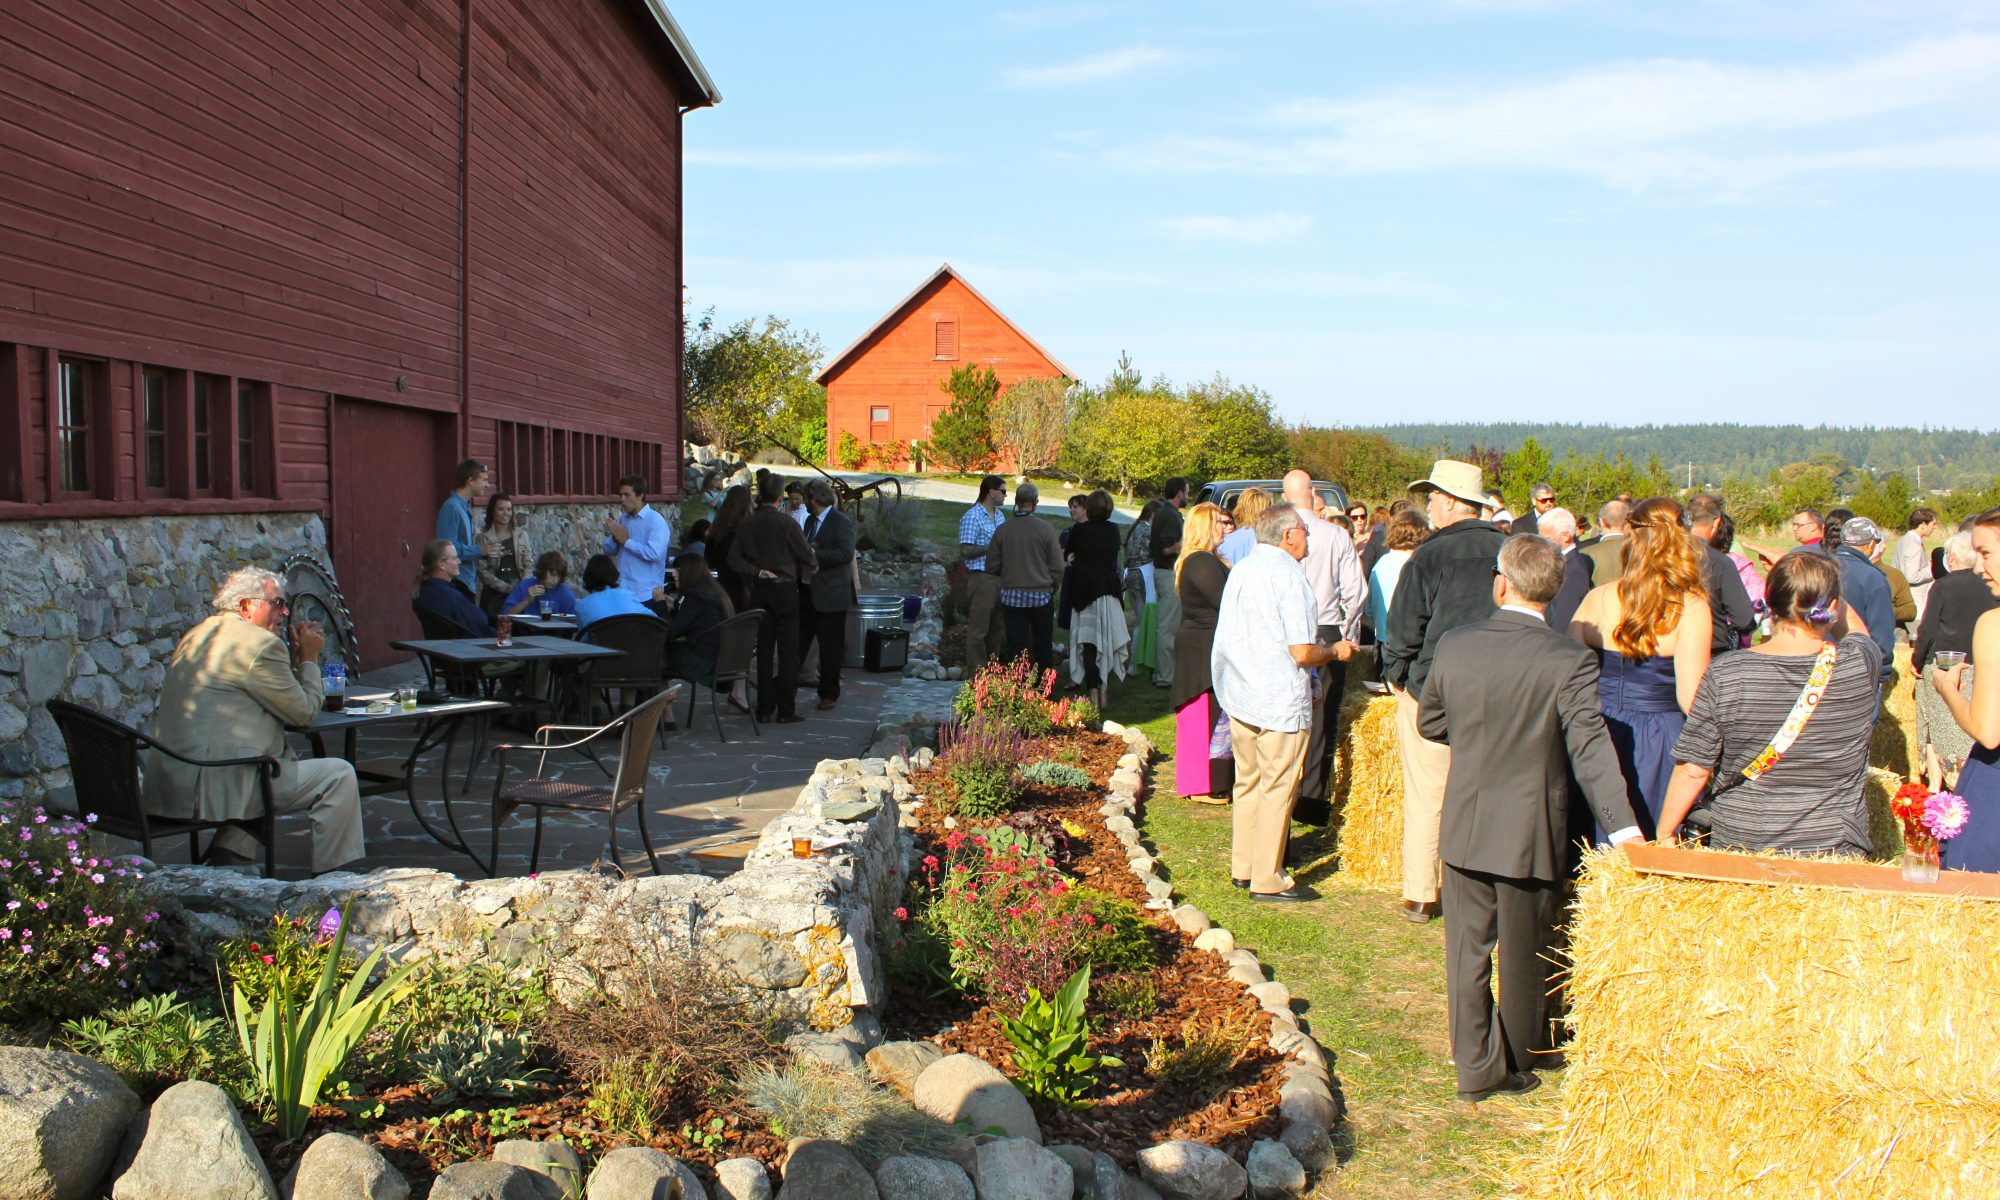 Crockett Barn on Whidbey Island - Parties and Weddings